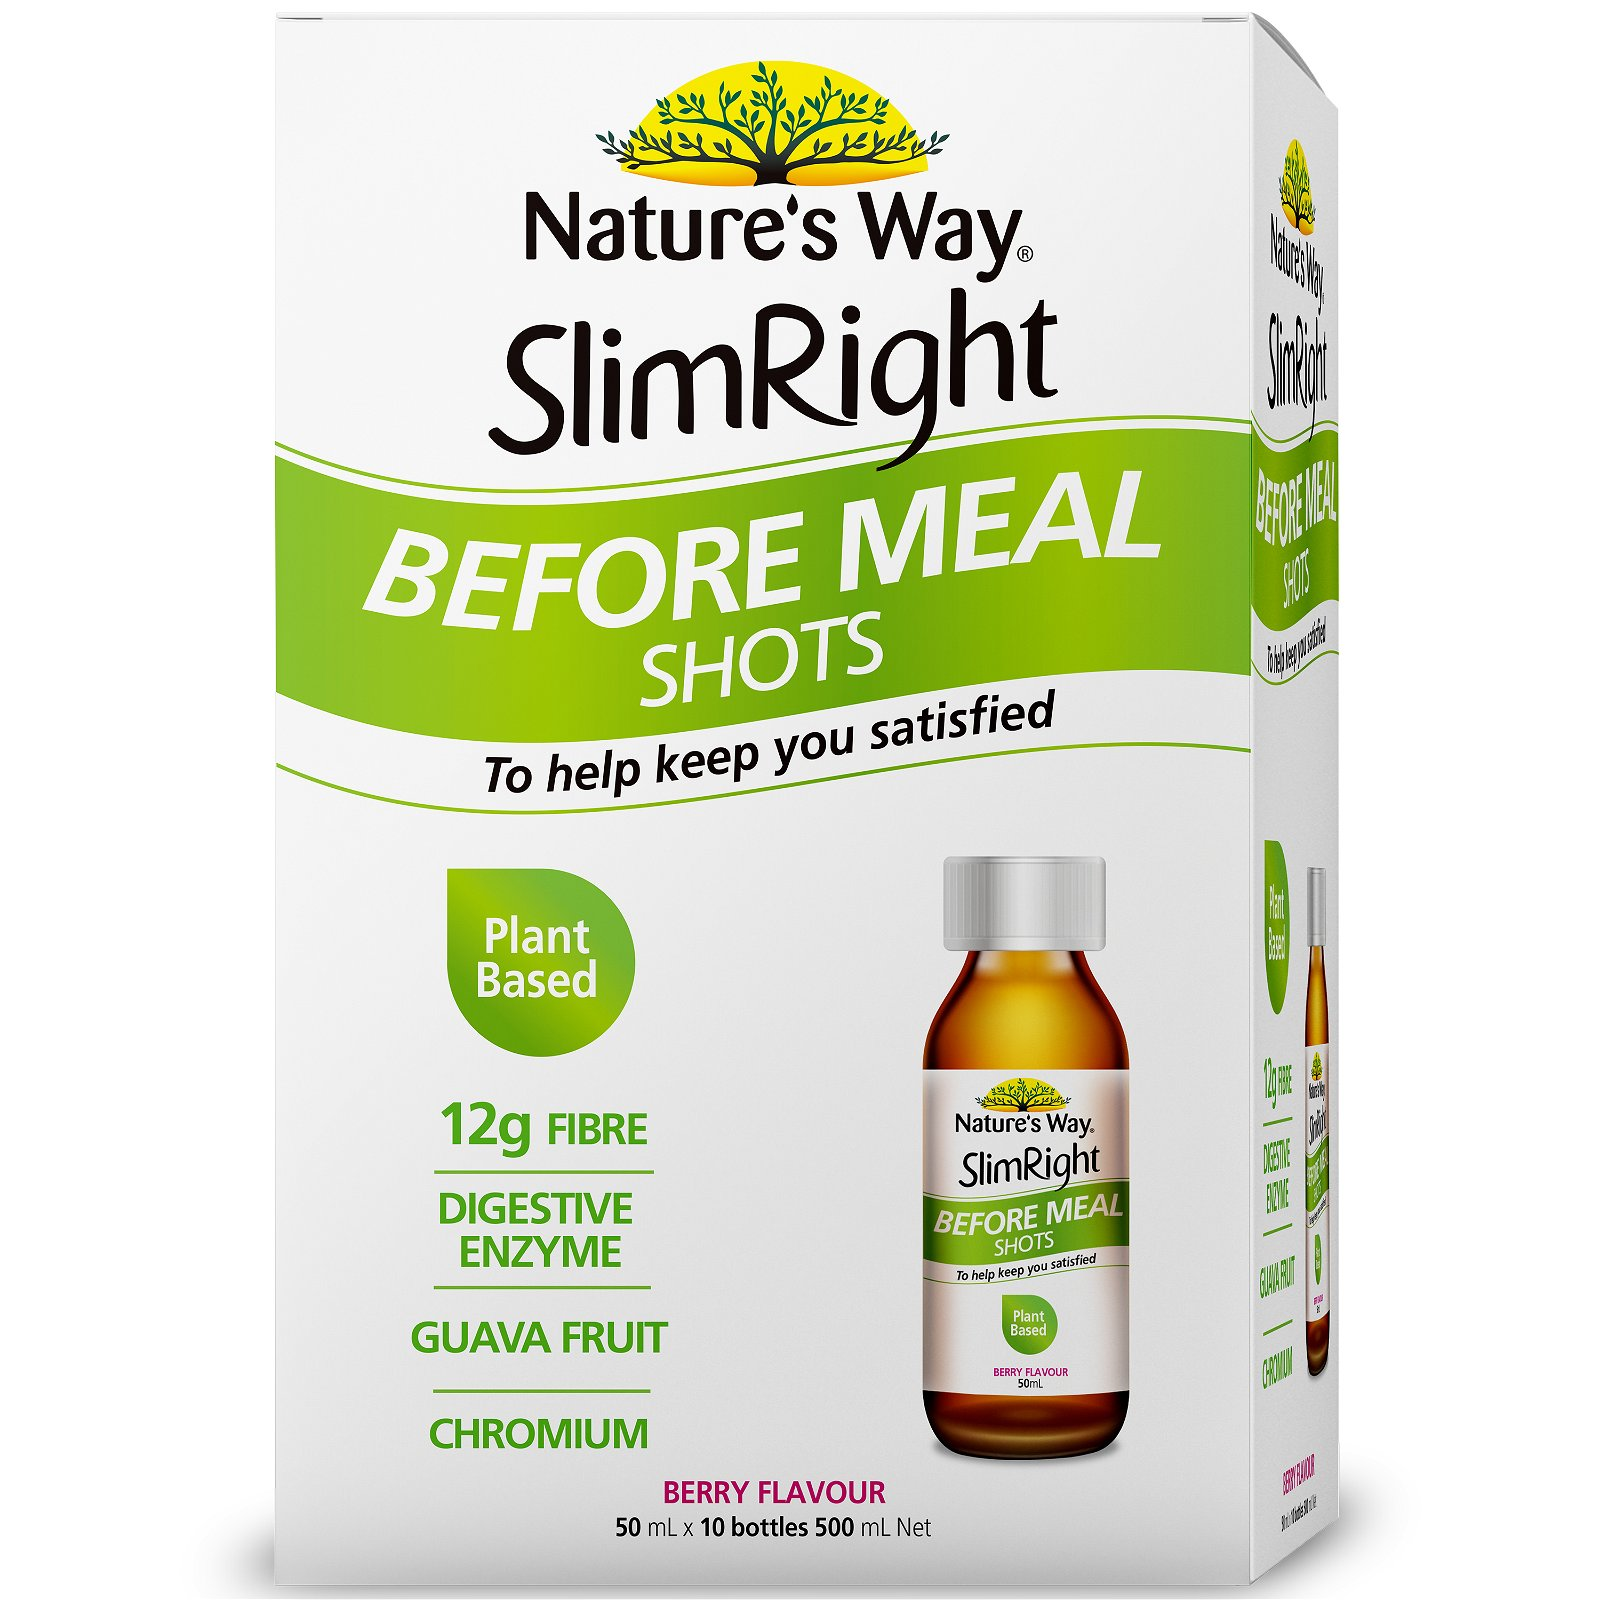 SlimRight Before Meal Shots 10x 50ml